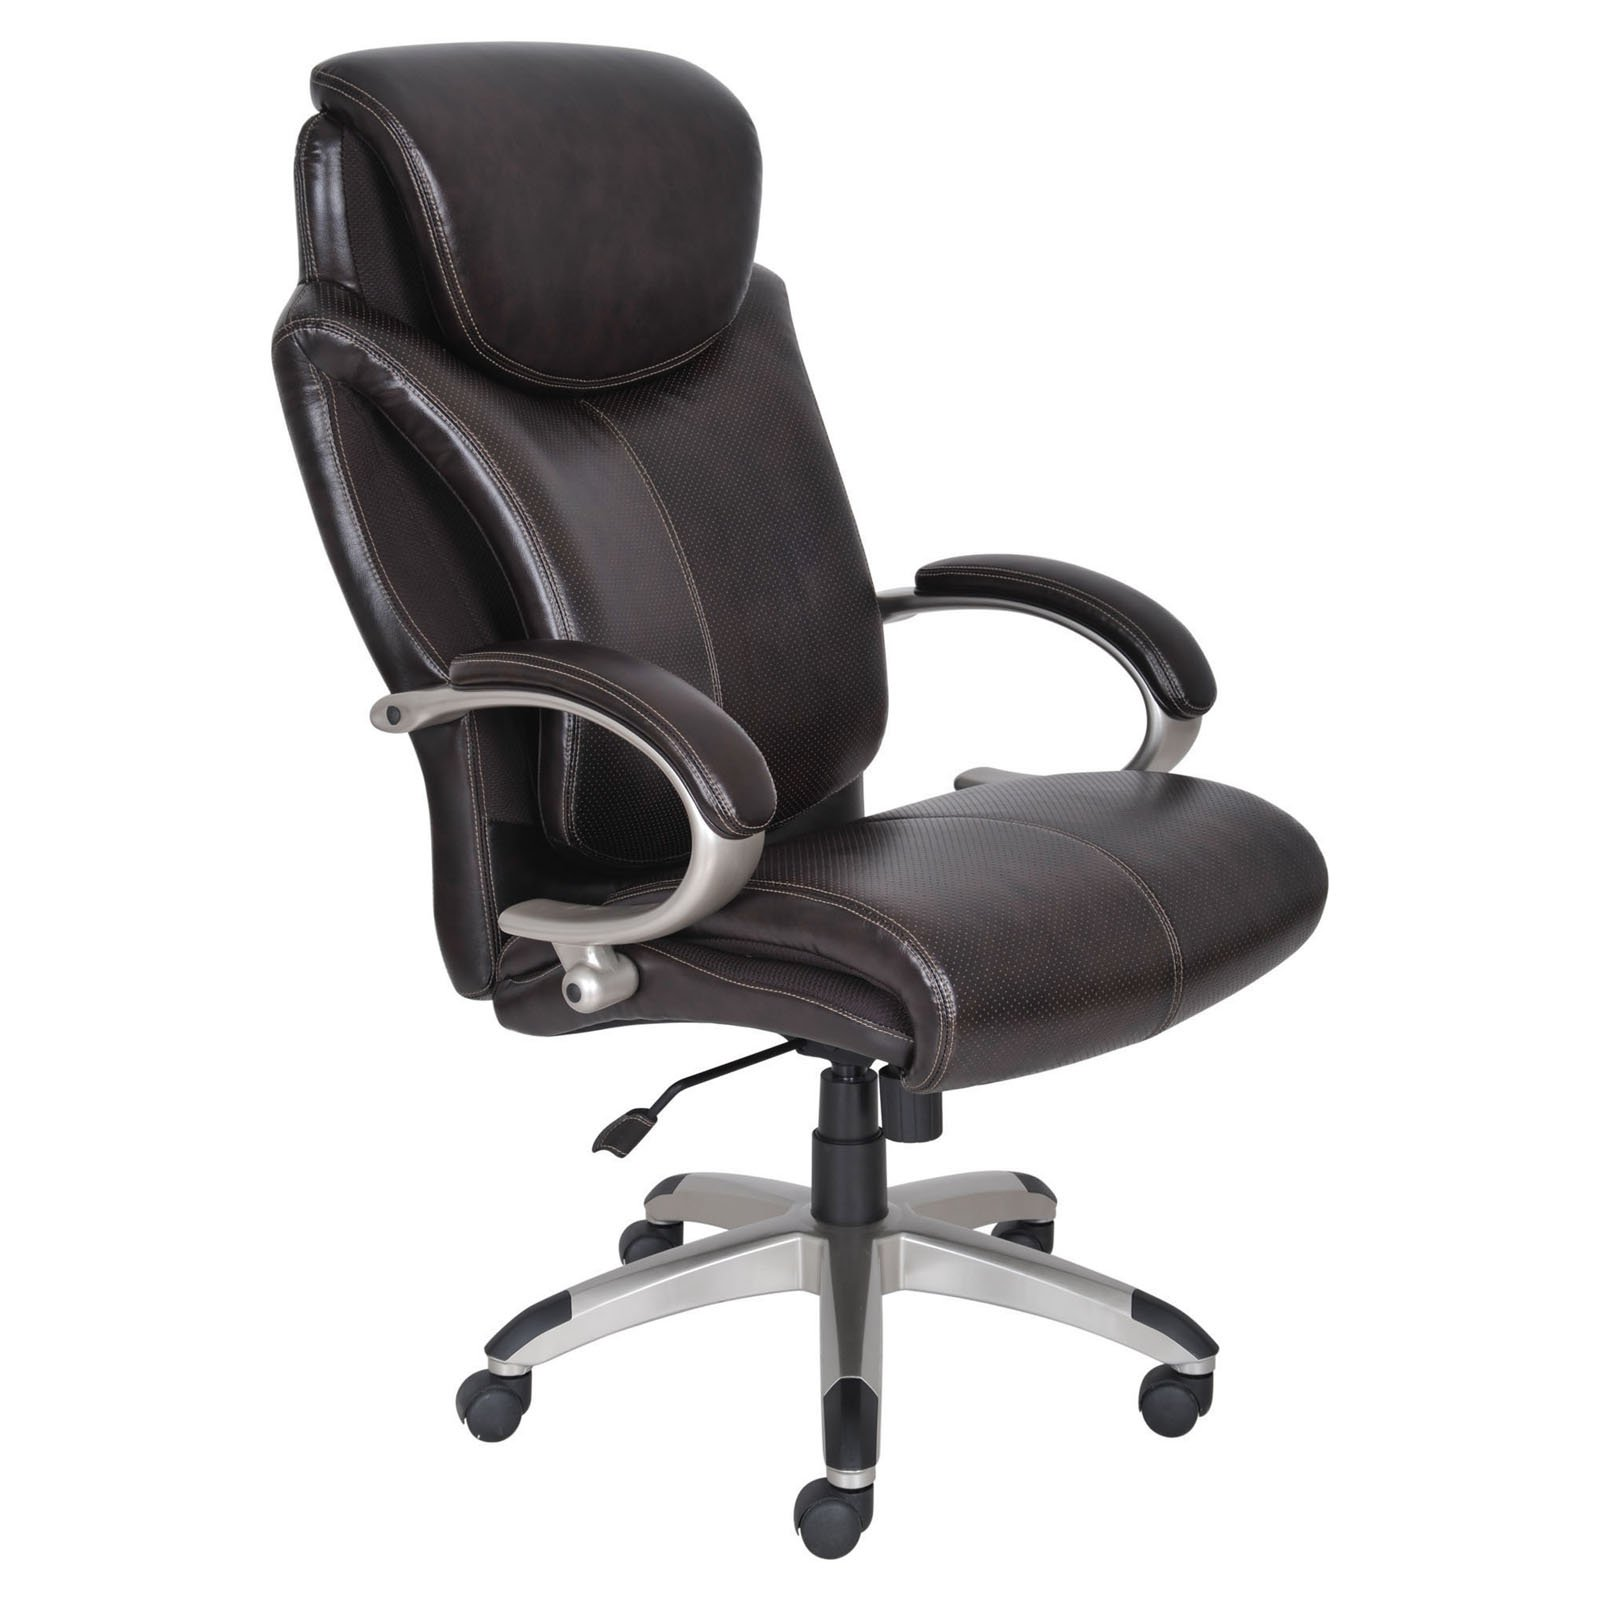 serta office chair warranty claim big and tall gaming smart layers executive